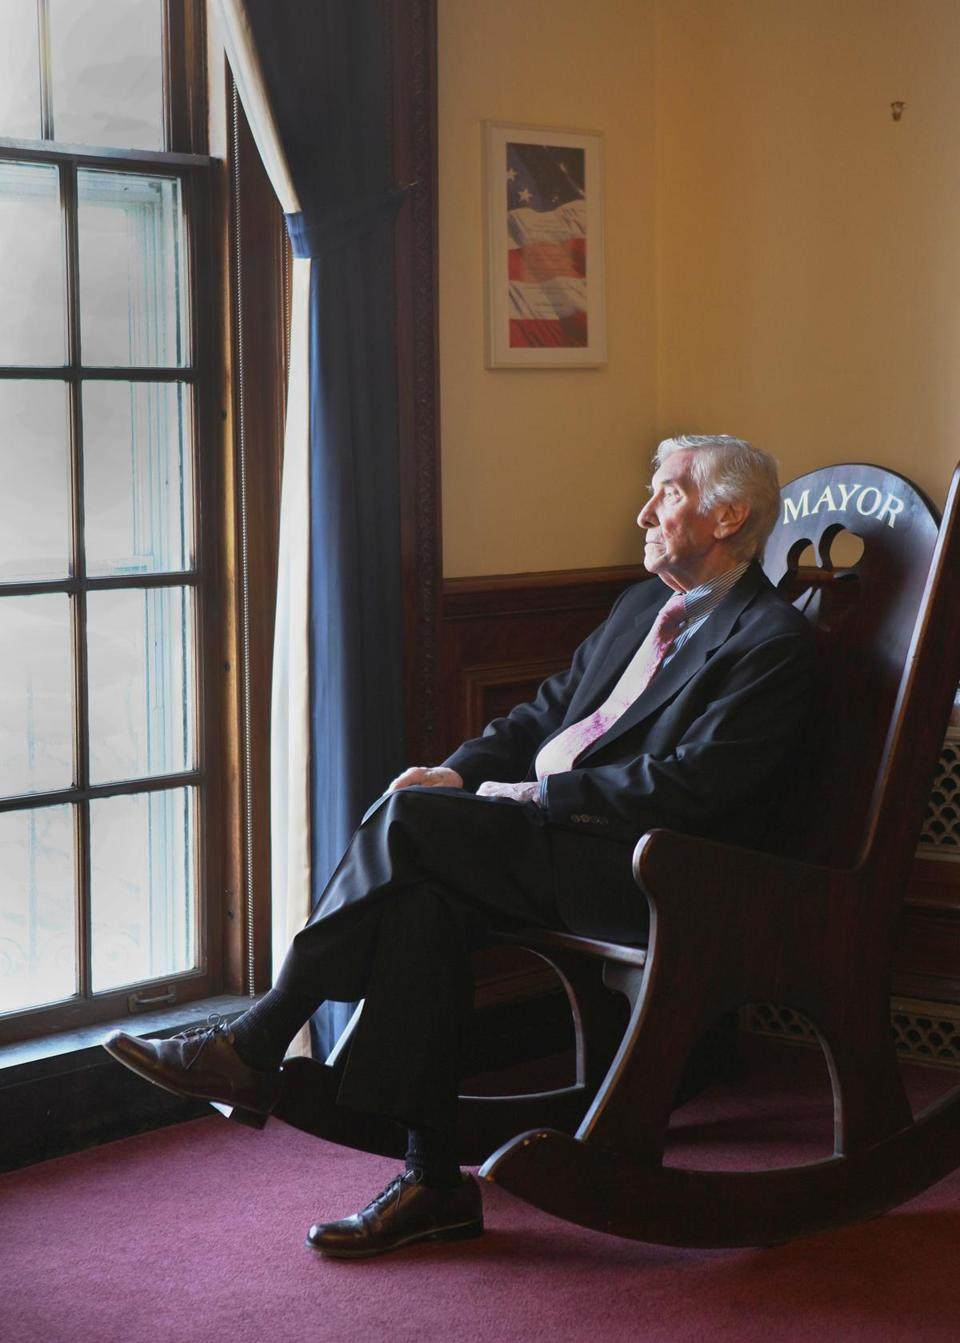 Mr. McGlynn sat in the office of his son, then-Medford Mayor Michael McGlynn, in 2012.